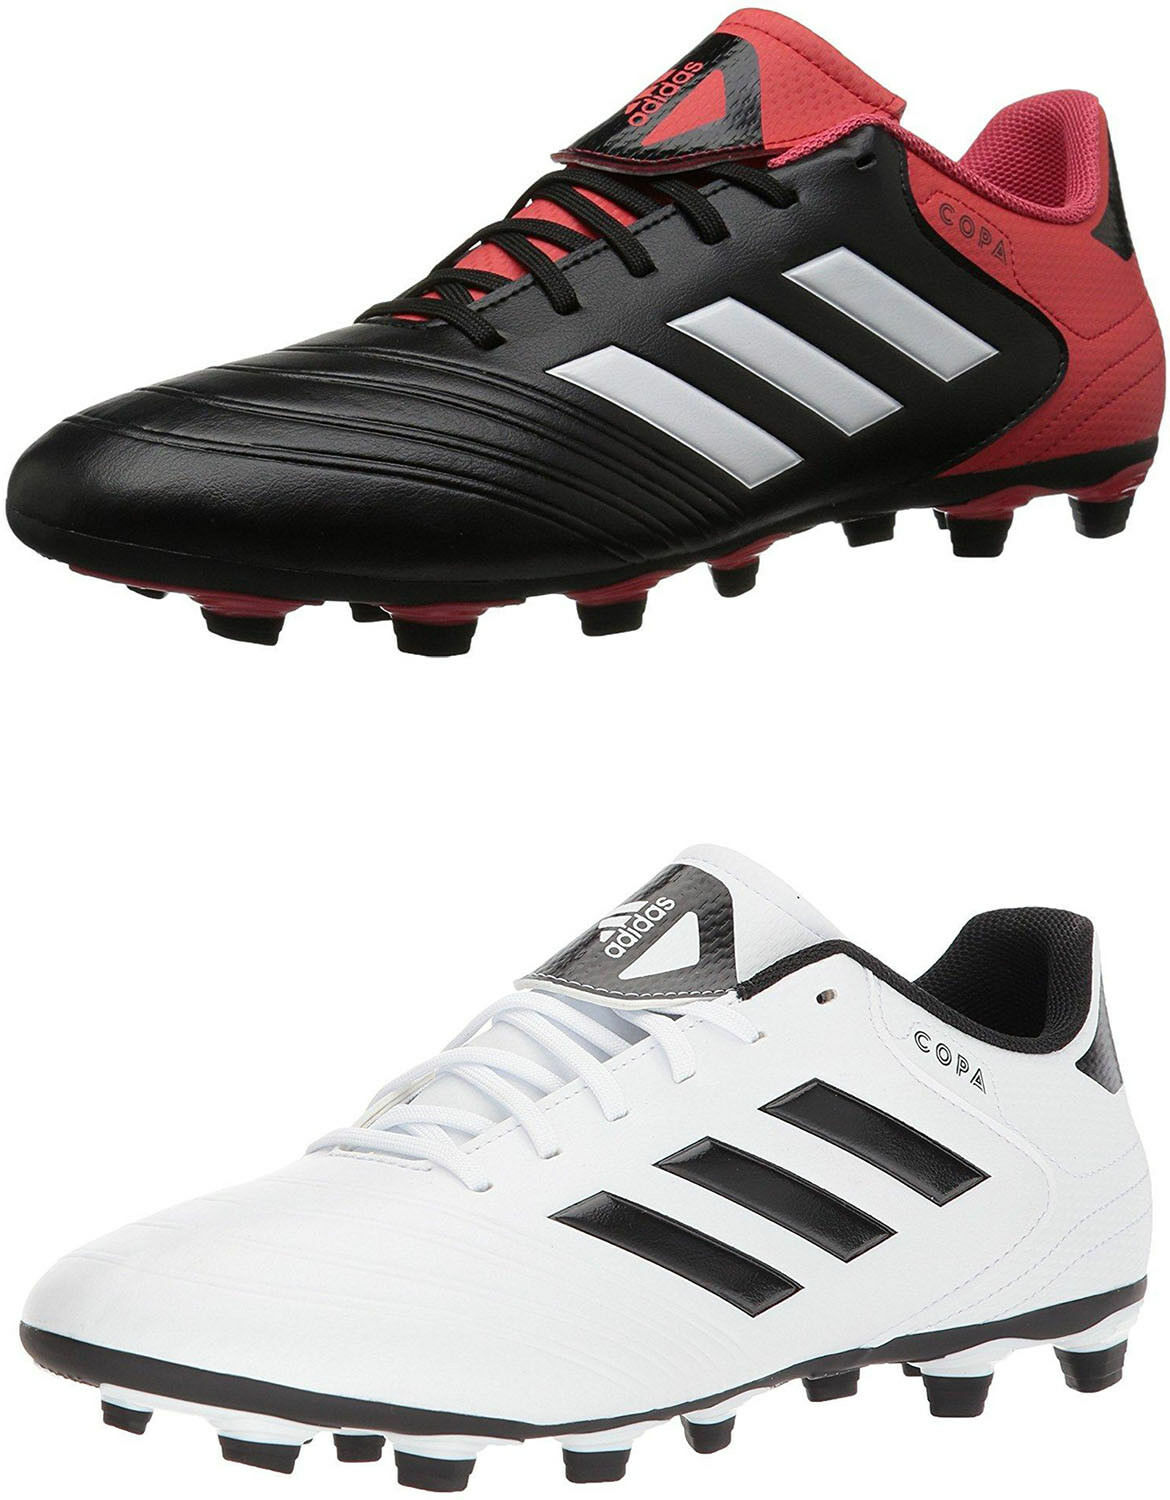 Adidas Men's Copa 18.4 Firm Ground Soccer Cleats, 2 colors